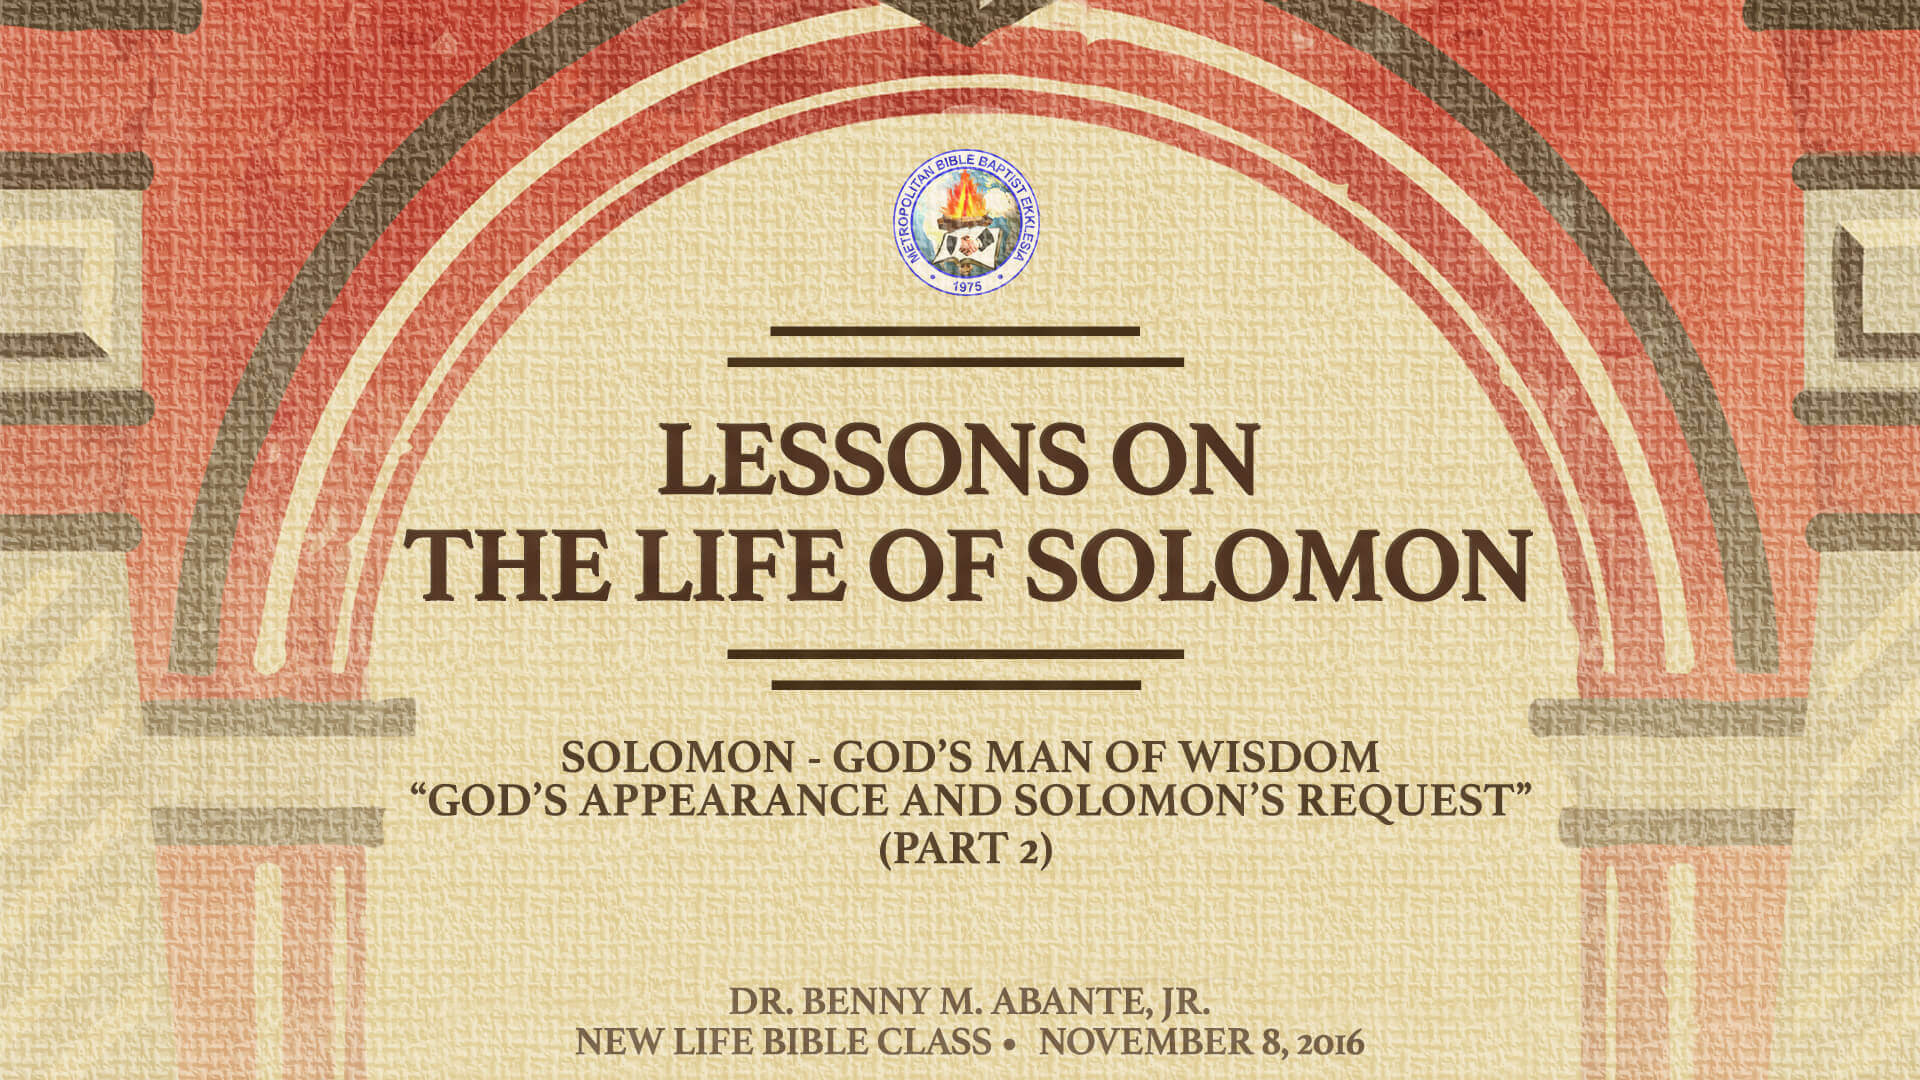 Bible study notes on King SOLOMON from biblereferenceguide.com